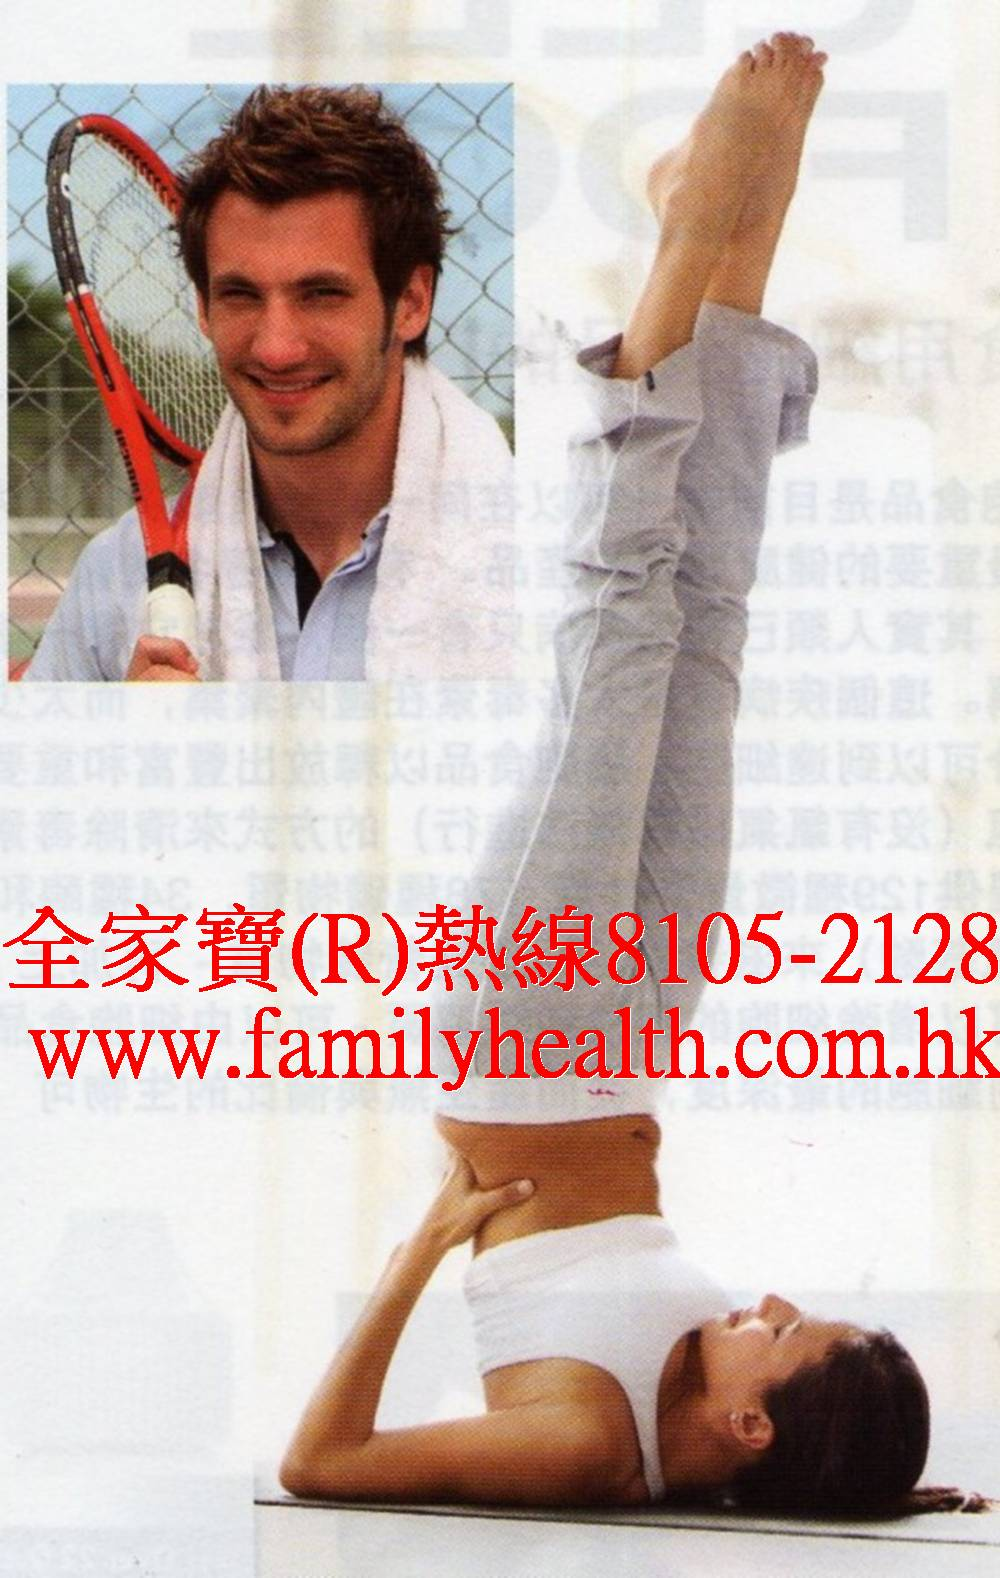 http://www.familyhealth.com.hk/files/full/869_4.jpg